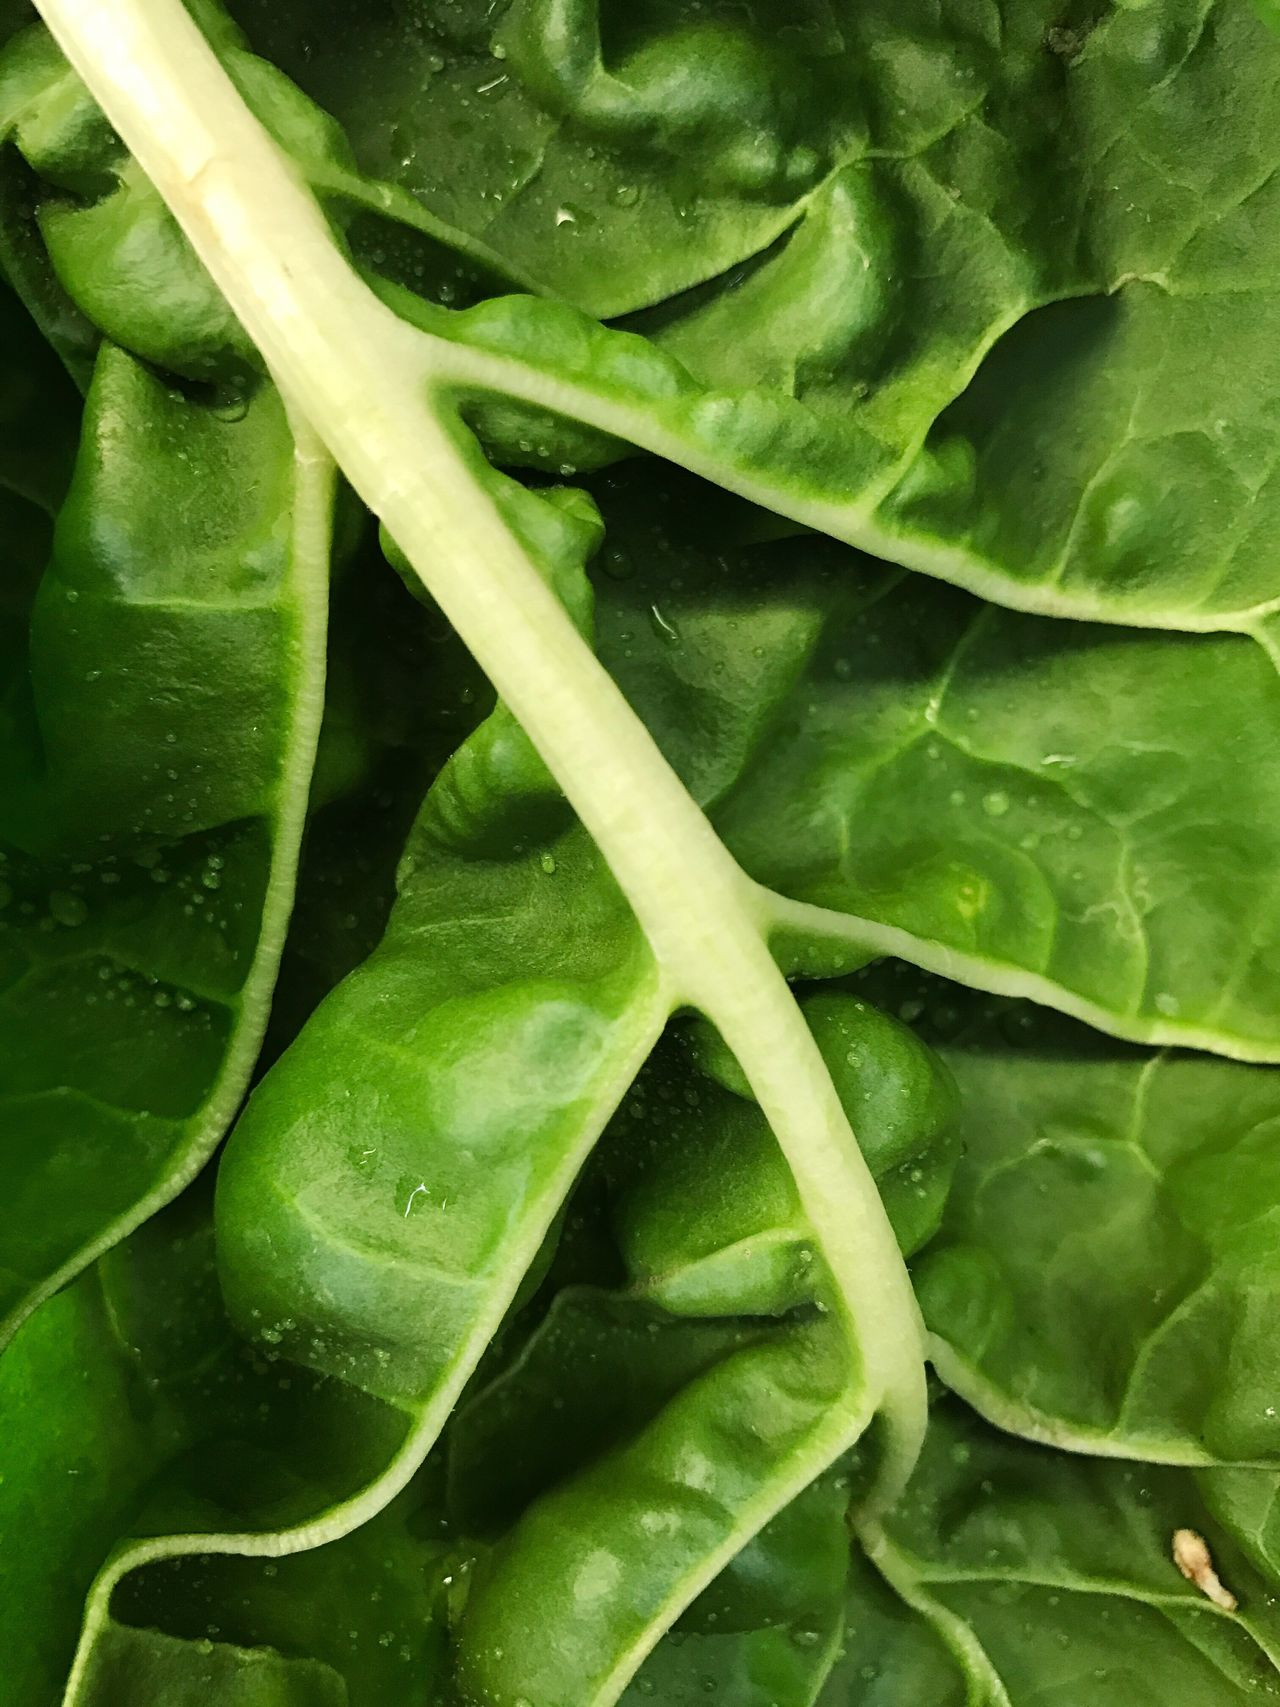 Lettuce Green Color Full Frame Freshness Healthy Eating Vegetable Food Backgrounds Food And Drink Close-up No People Leaf Indoors  Day Walmart IPhoneography IPhone Photography Nature Iphone 6 IPhone 6s IPhone 7 Colorful Composition Fresh Freshness